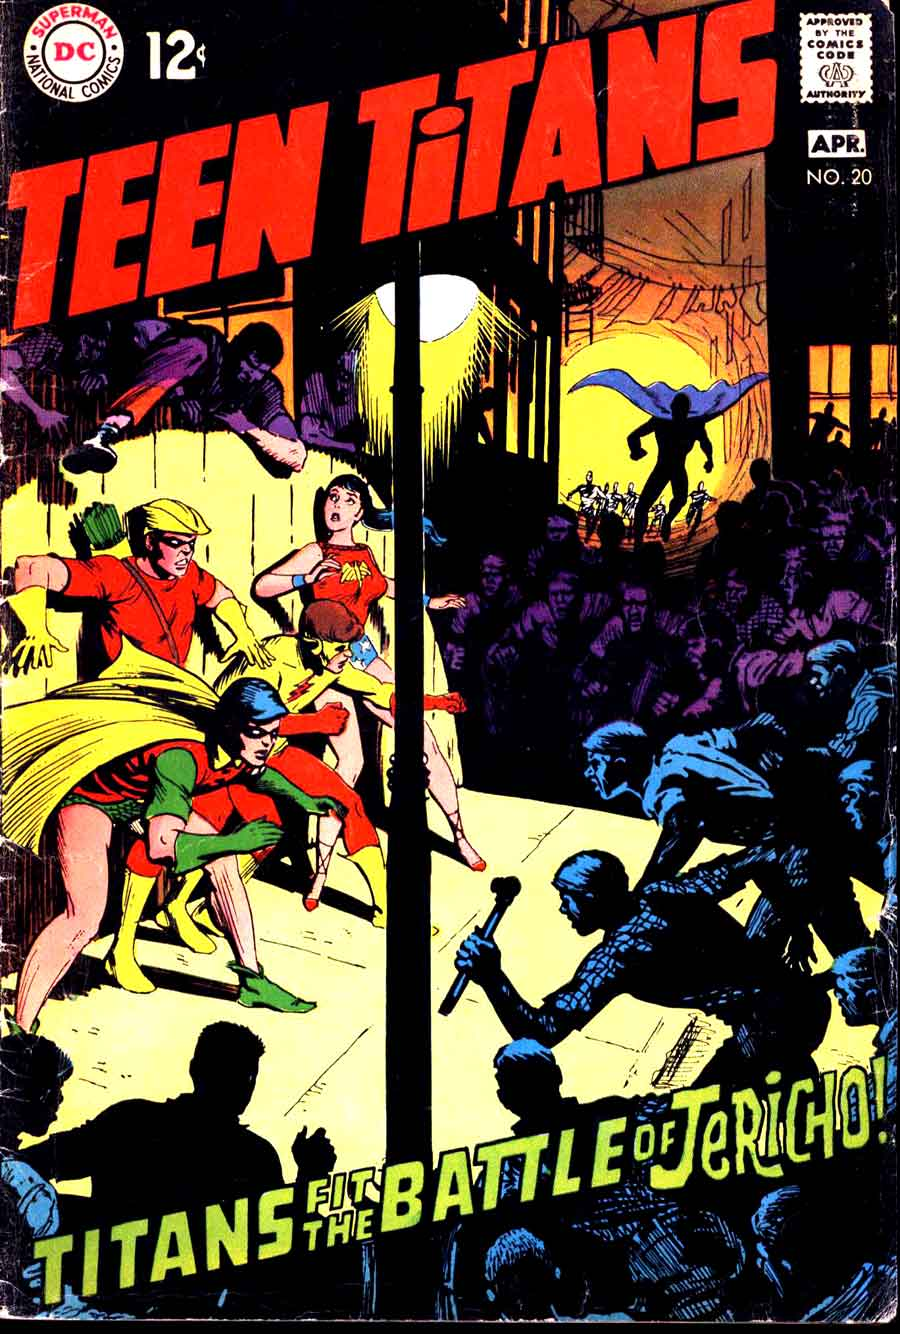 Teen Titans v1 #20 dc comic book cover art by Nick Cardy